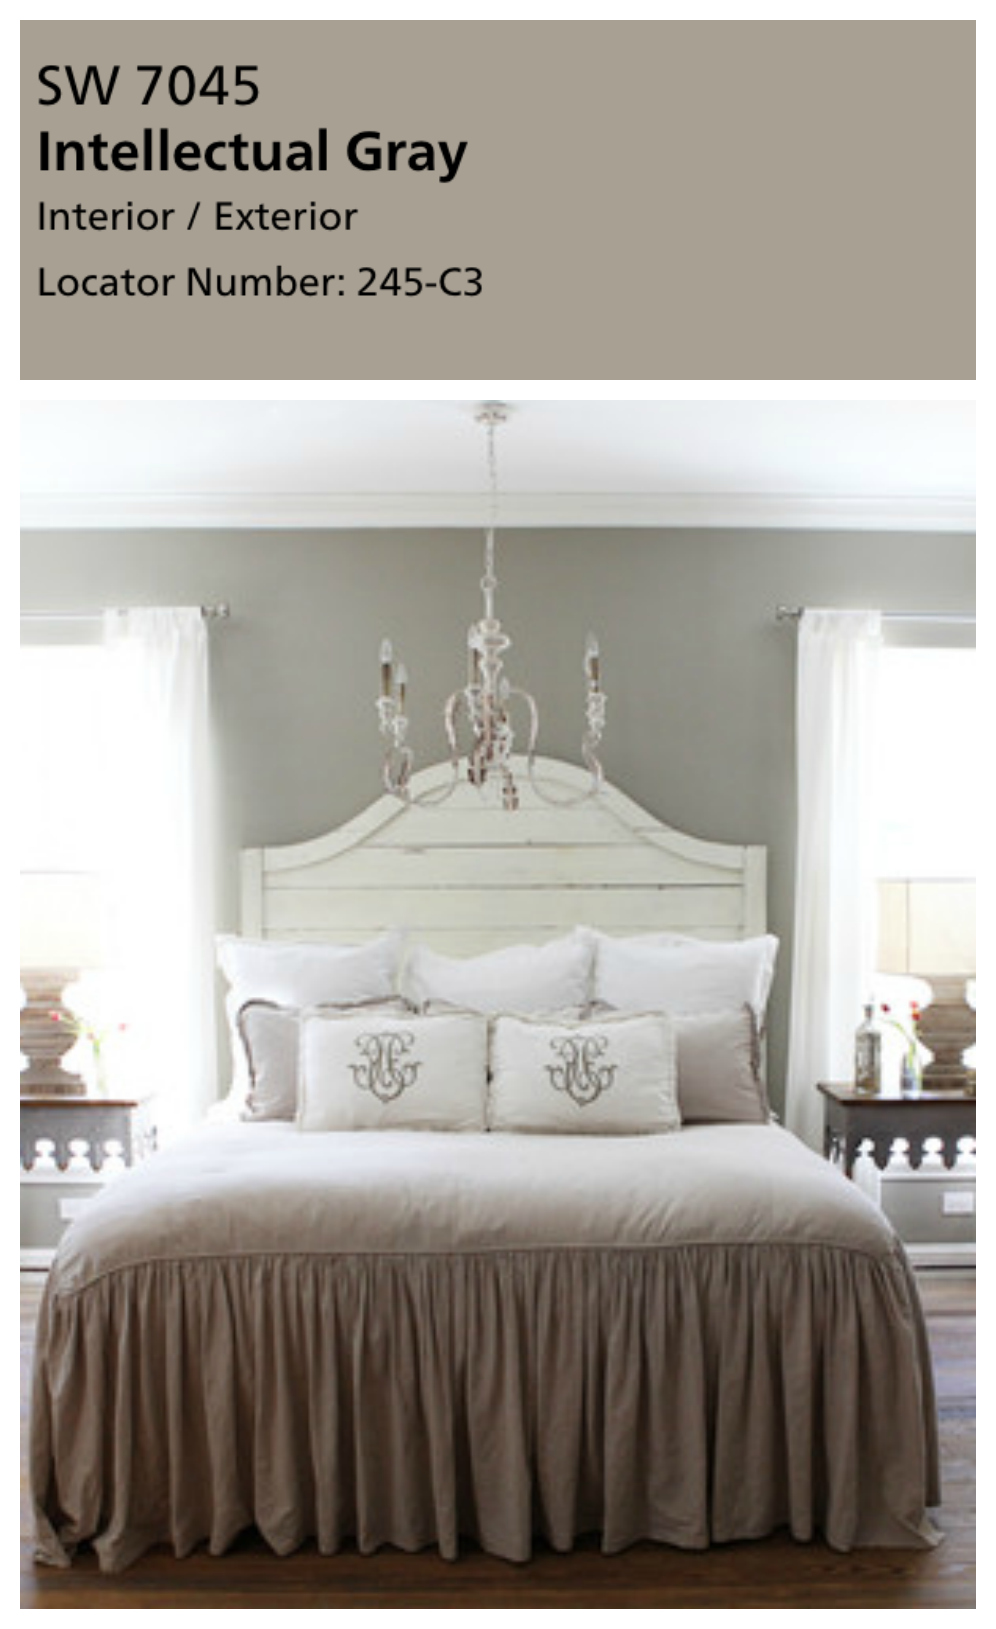 Where does joanna gaines buy her bedding - Fixer Upper Master Bedroom Paint Color A Master Bedroom Is The Perfect Place For Sherwin